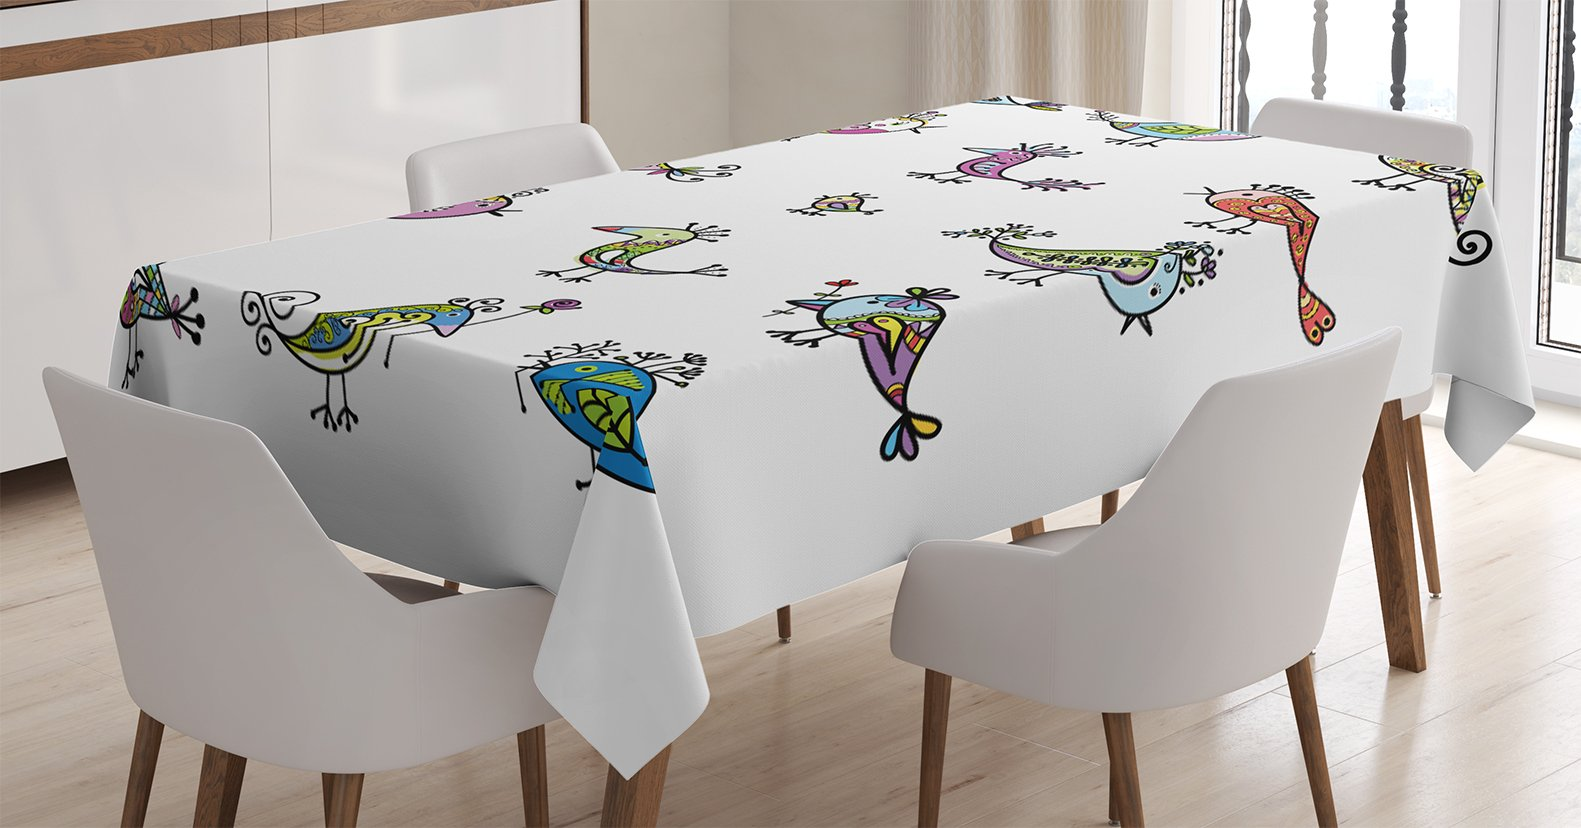 Ambesonne Funny Decor Tablecloth, Cute Colorful Bird Family with Floral Ethnic Ornaments Embellished Wings Animal Theme Print, Rectangular Table Cover for Dining Room Kitchen, 60x90 Inches, Multi